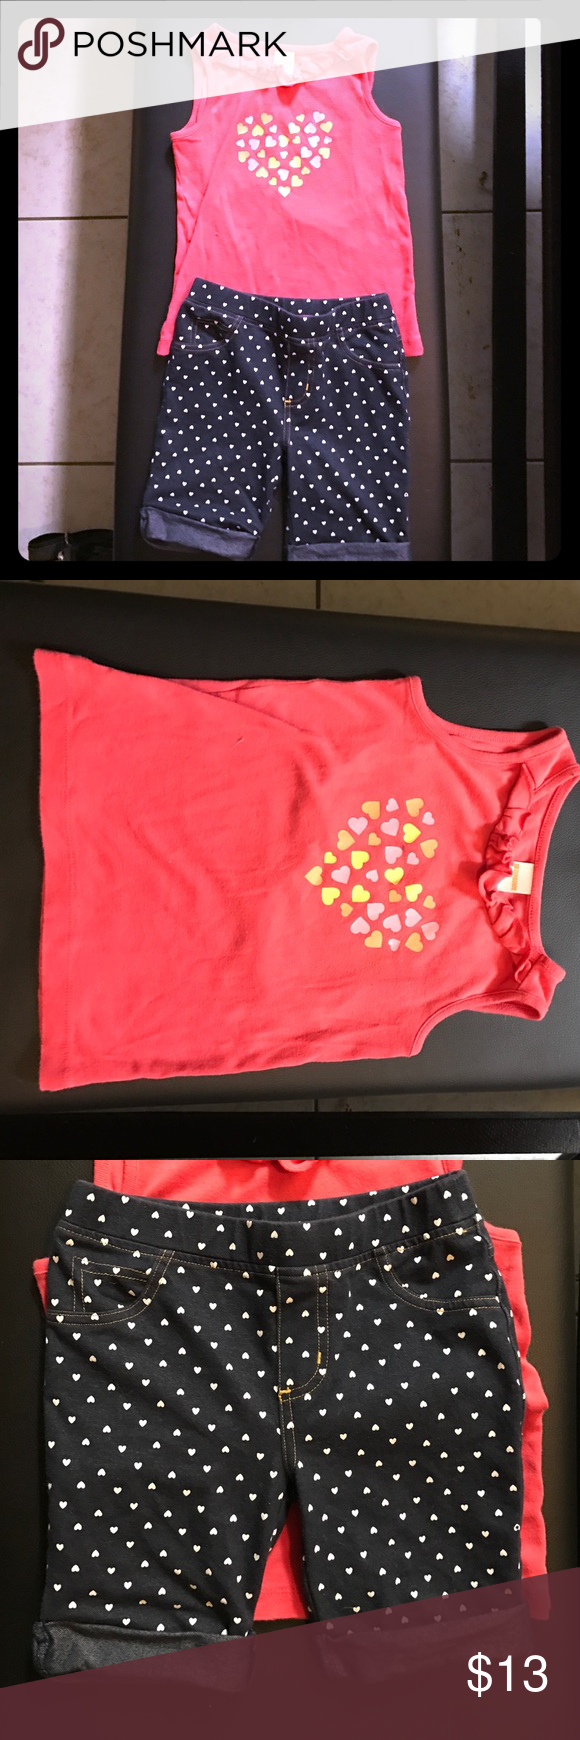 Heart Outfit- Tank top and Shorts Different brands, not a set- just a pair I thought went well together! Top is Gymboree but the shorts are Epic Threads Epic Threads Matching Sets